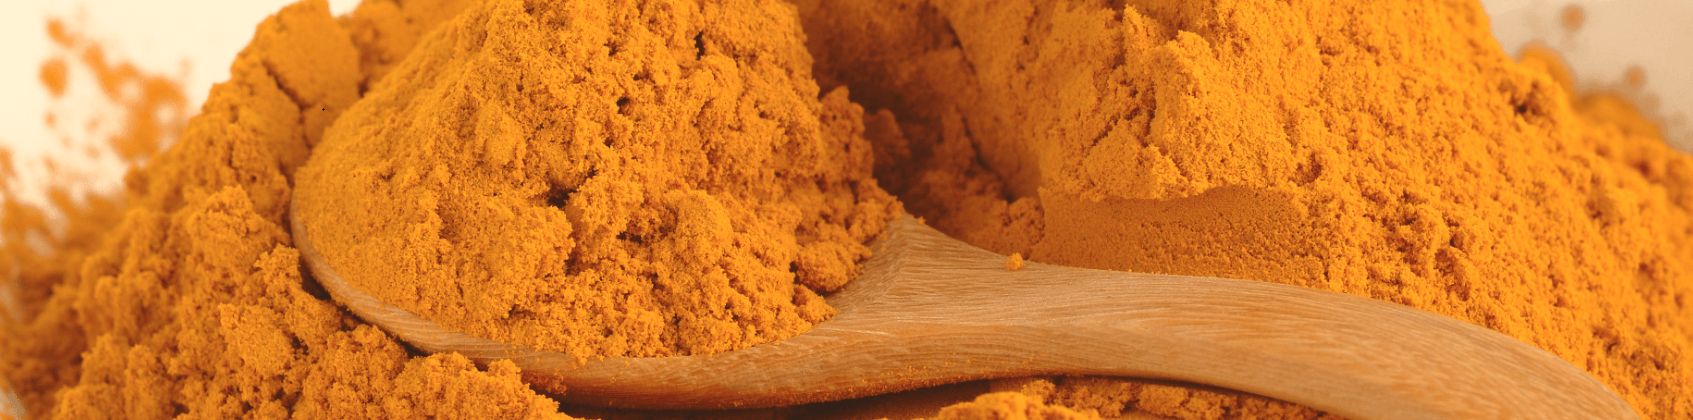 Spoonful of turmeric.